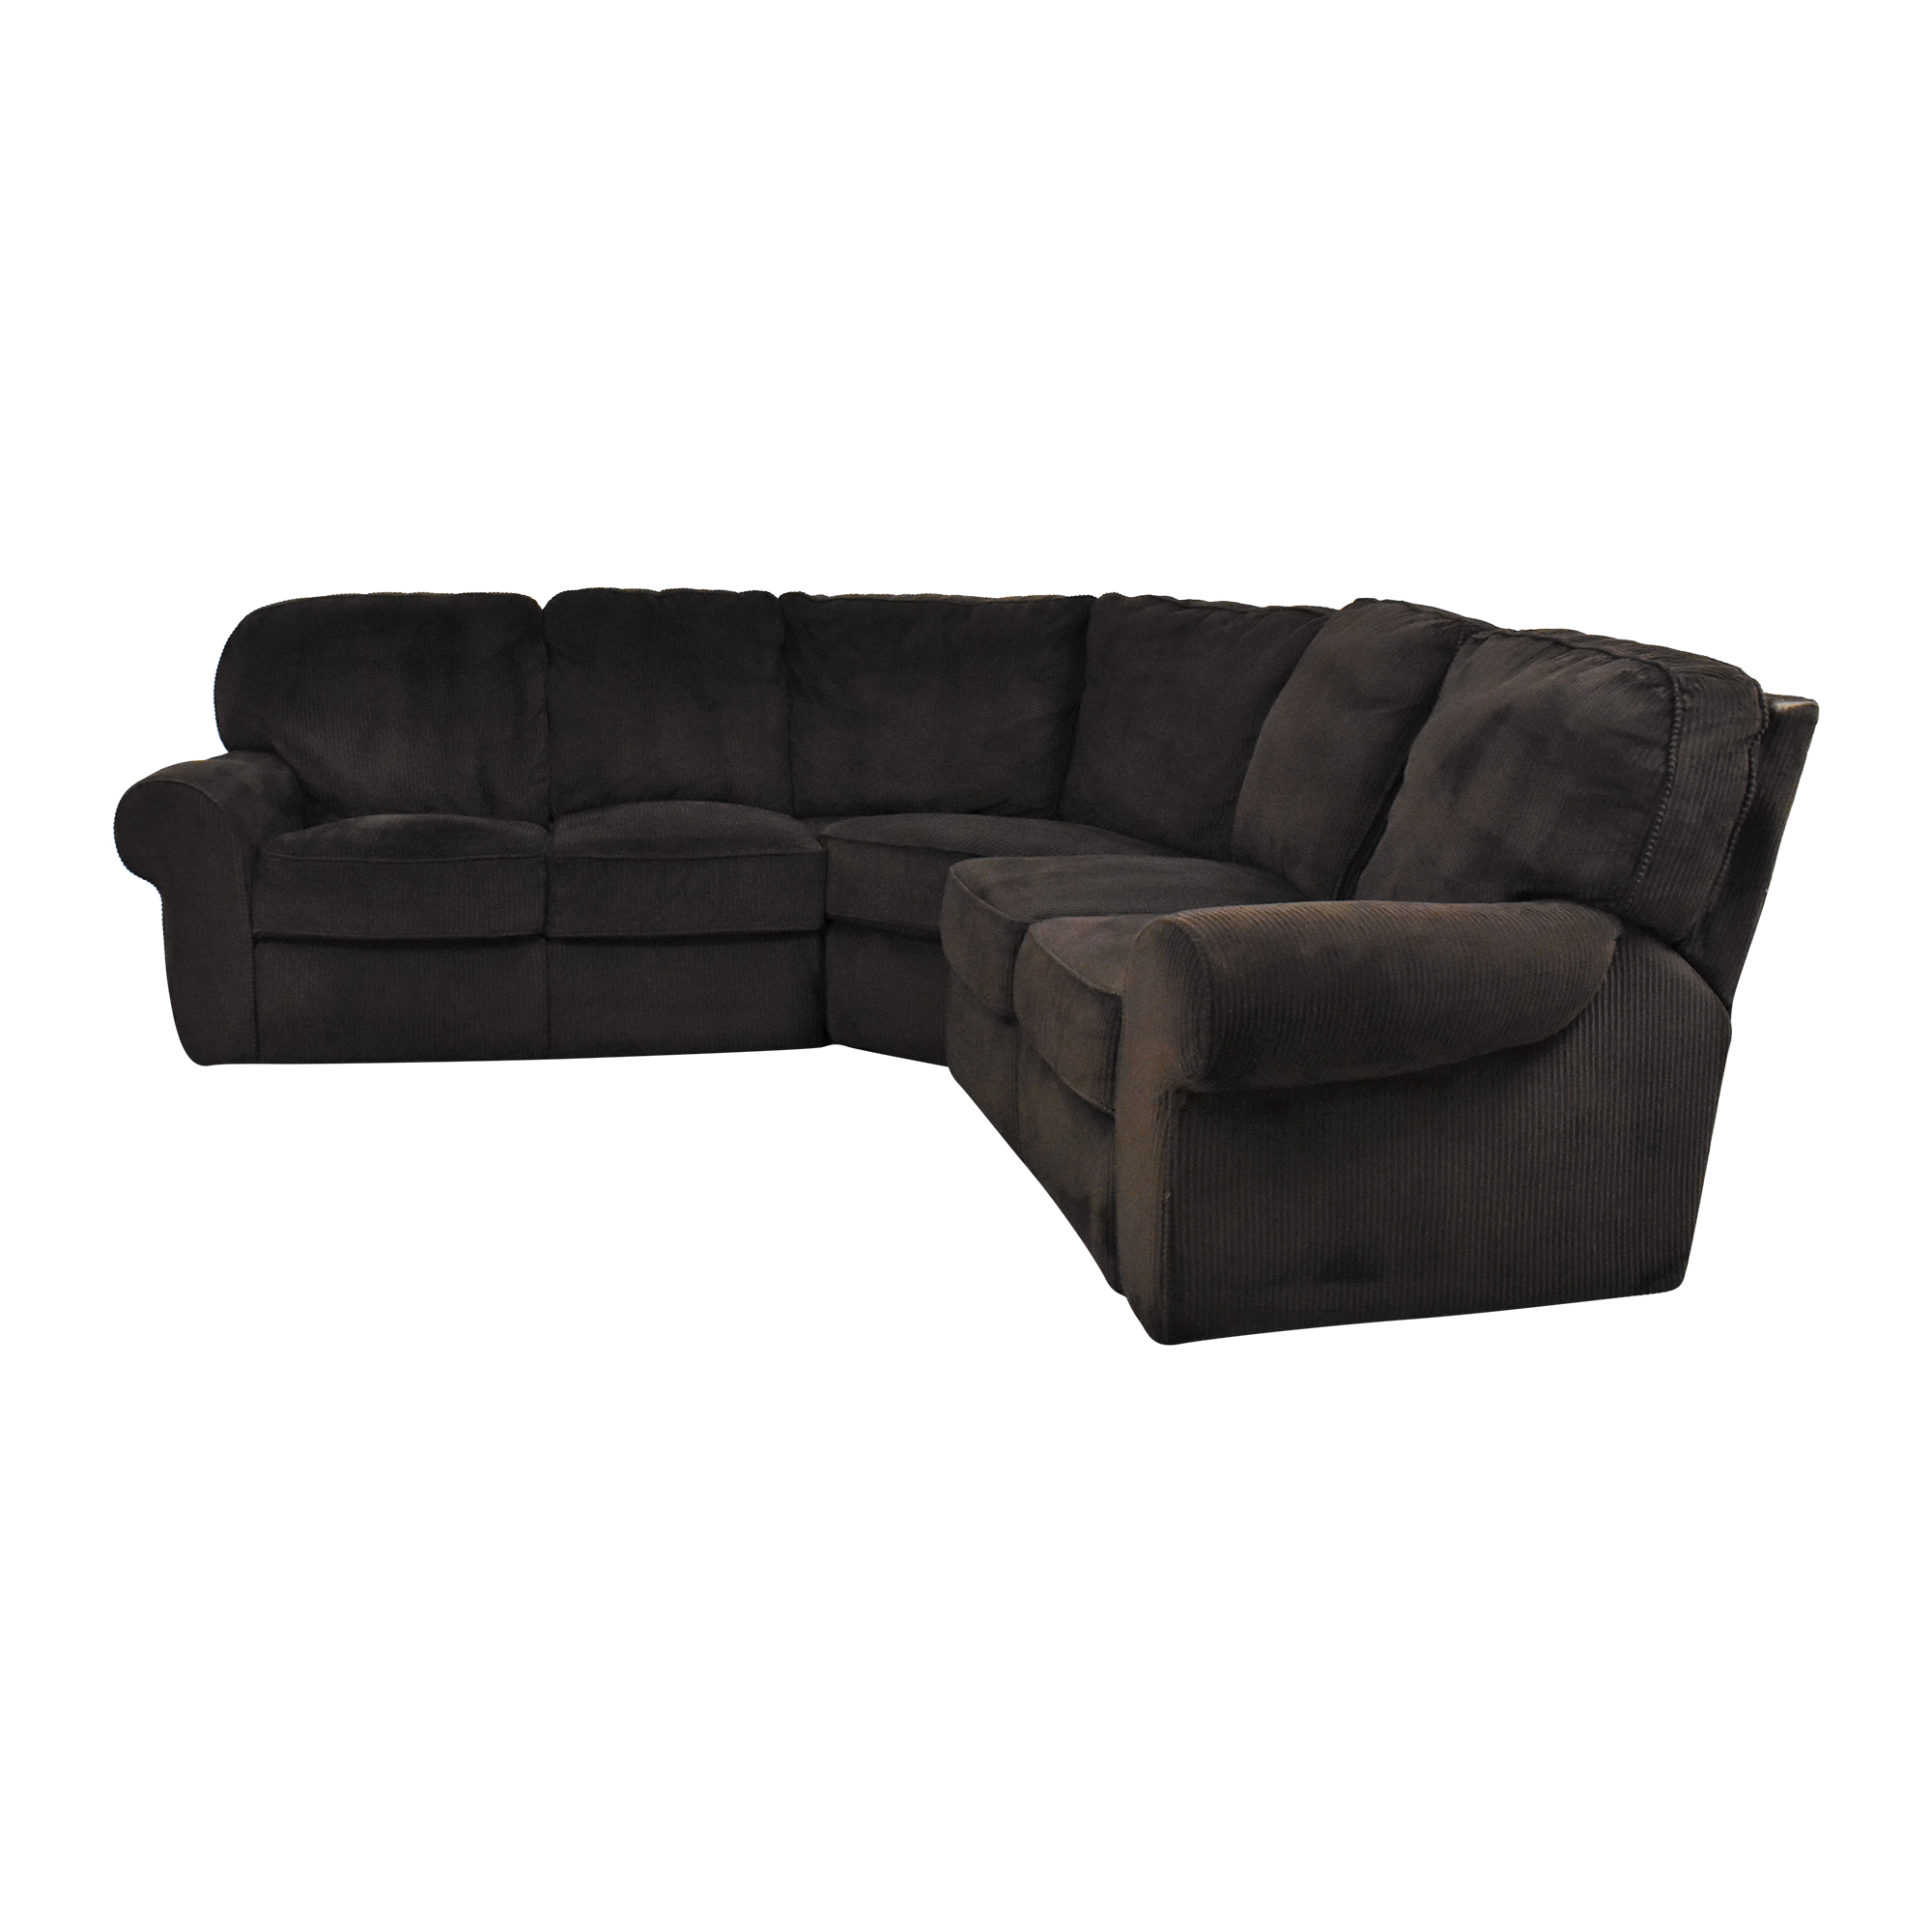 Lane Furniture Lane Furniture Megan Three Piece Reclining Sectional Sectionals